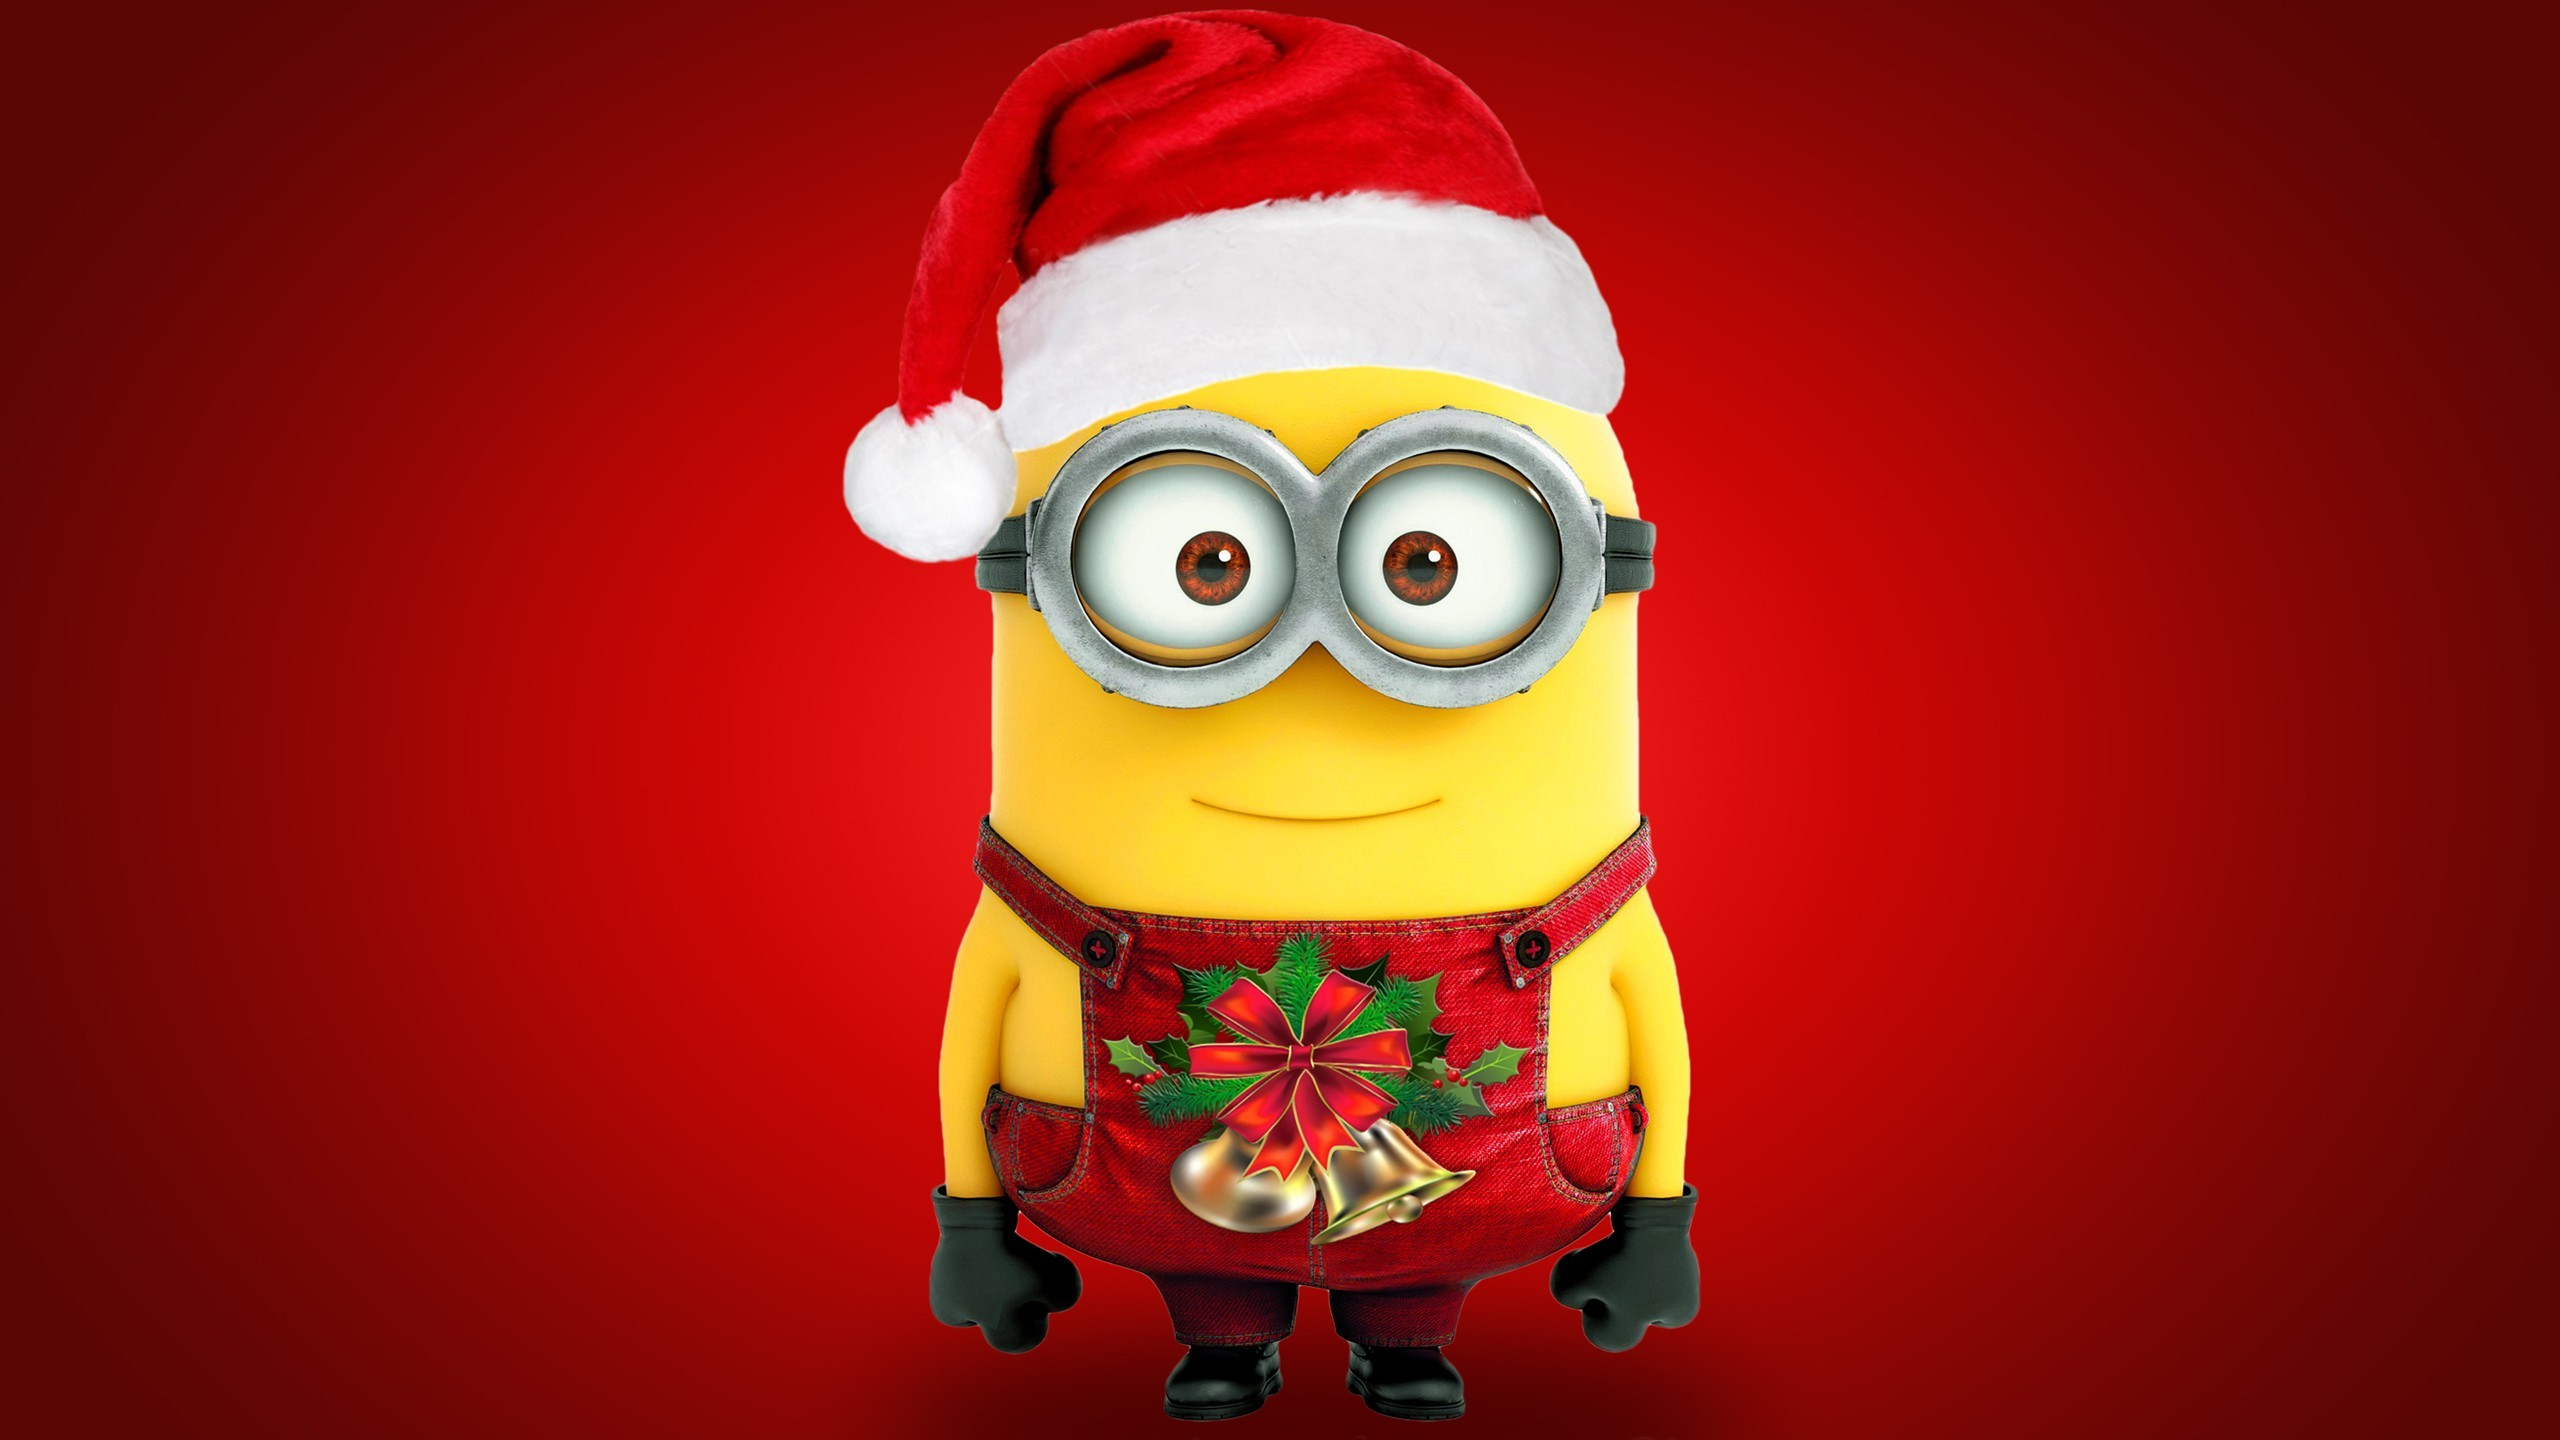 2560x1440 minion christmas desktop wallpaper